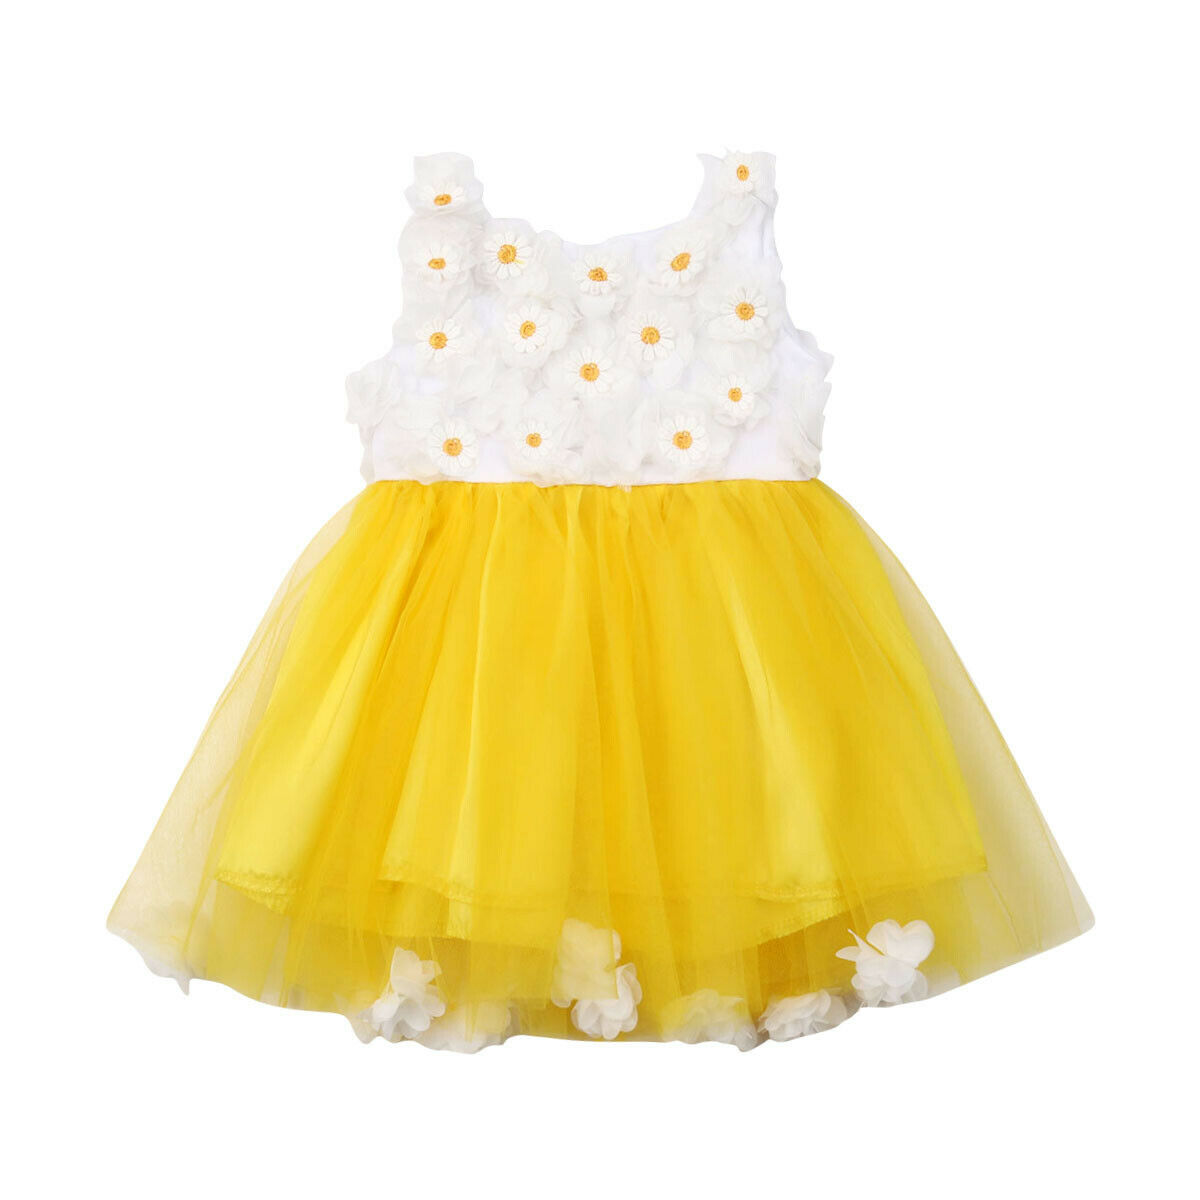 Summer Toddler Kids Baby Girls Dress Lace Tulle Party Bridesmaid Pageant Dresses